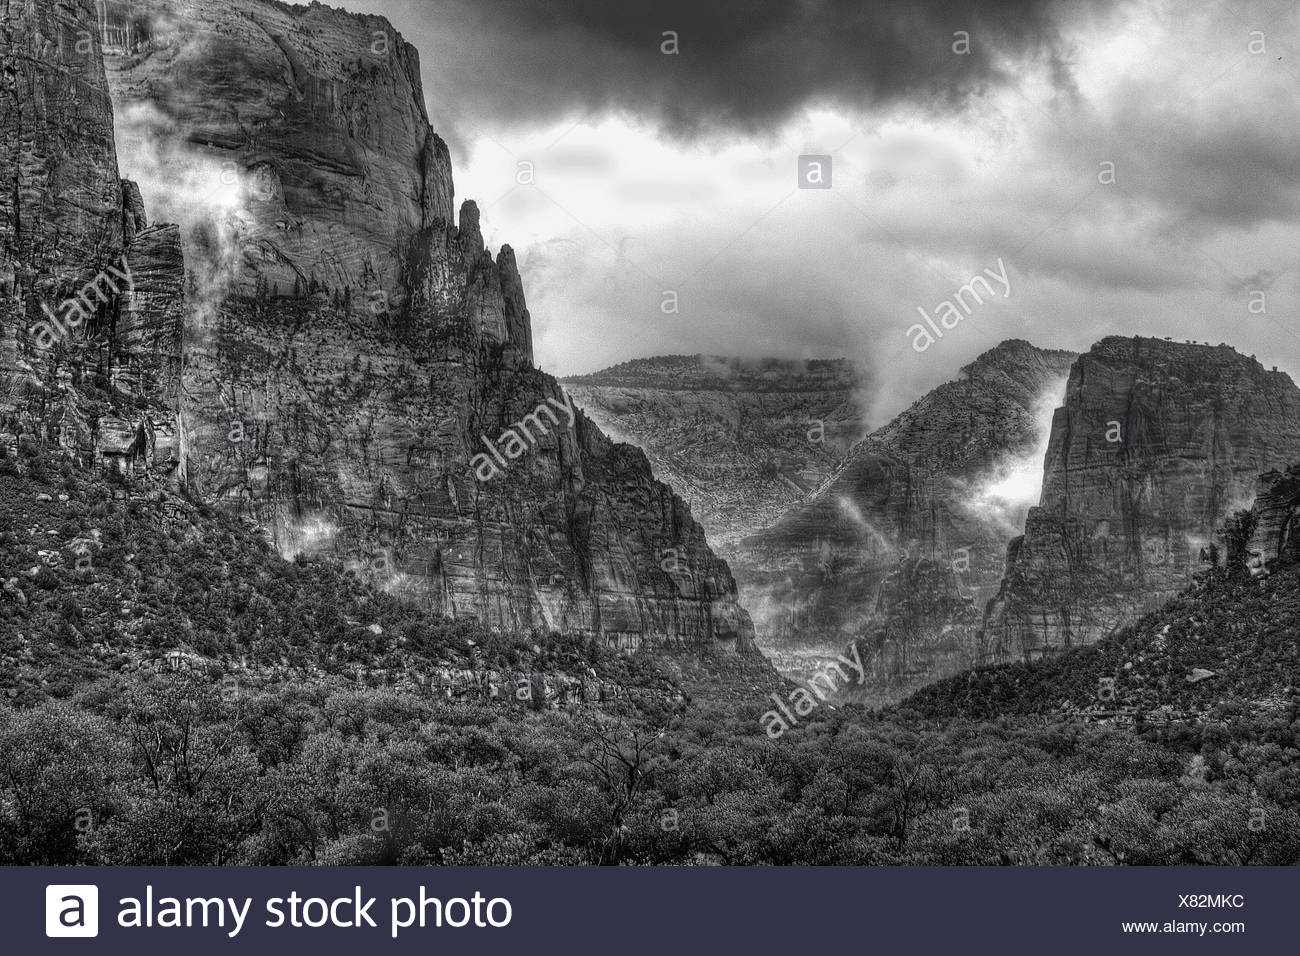 Rain and fog have enveloped Zion Canyon on a stormy afternoon at Zion National Park,Utah - Stock Image